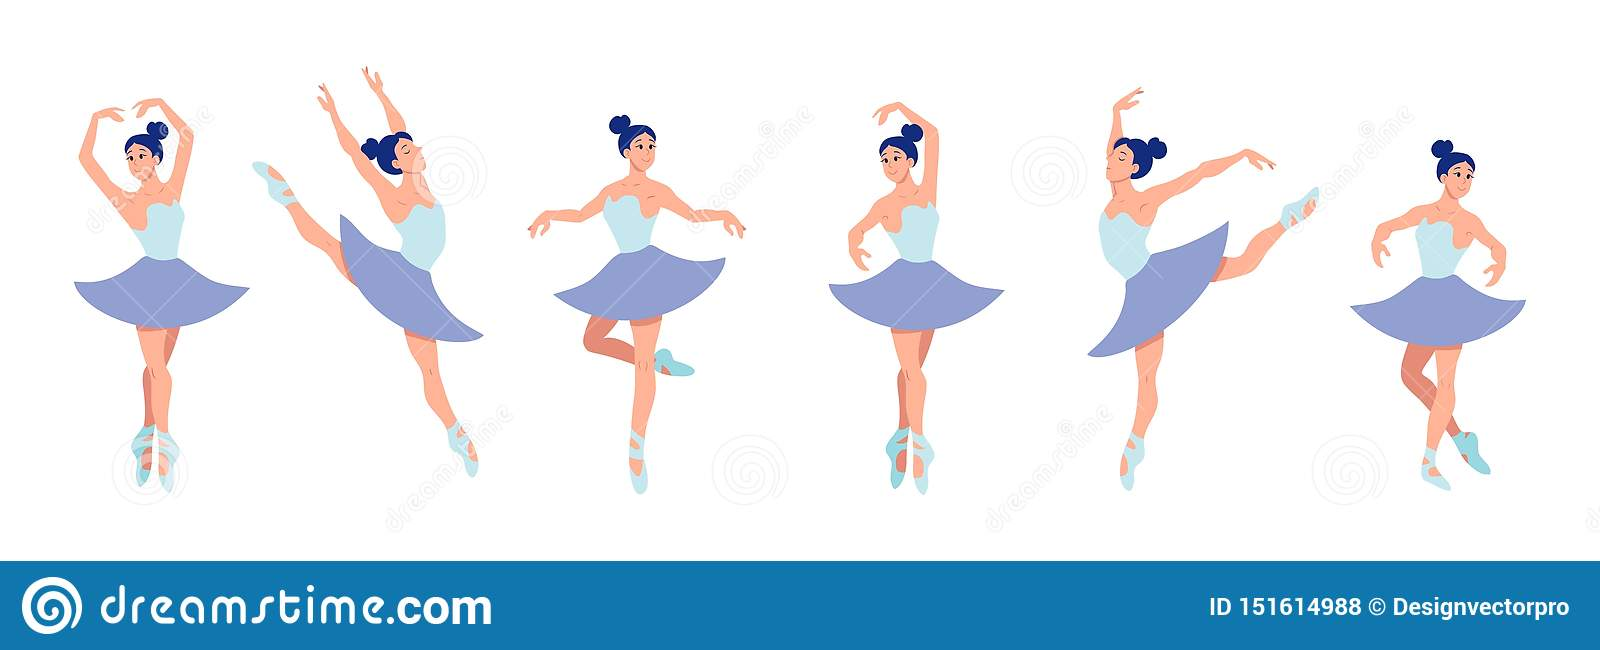 Ballerina Dancing Cartoon Stock Illustrations 1 978 Ballerina Dancing Cartoon Stock Illustrations Vectors Clipart Dreamstime